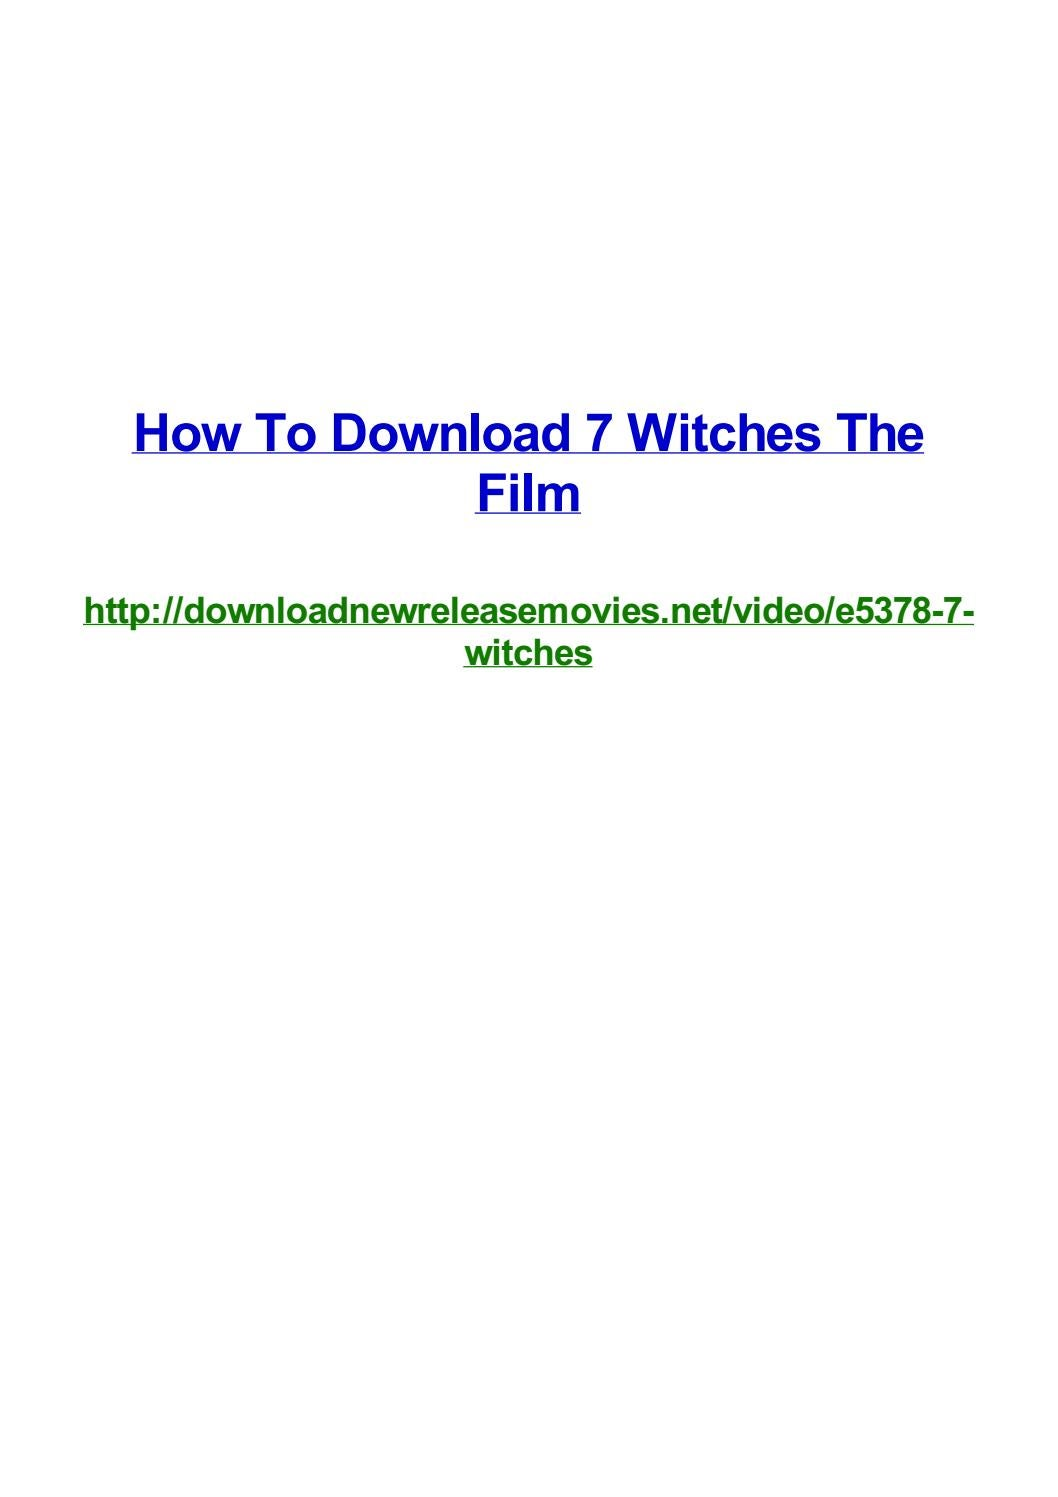 How to download 7 witches the film by Frank Seamons - issuu